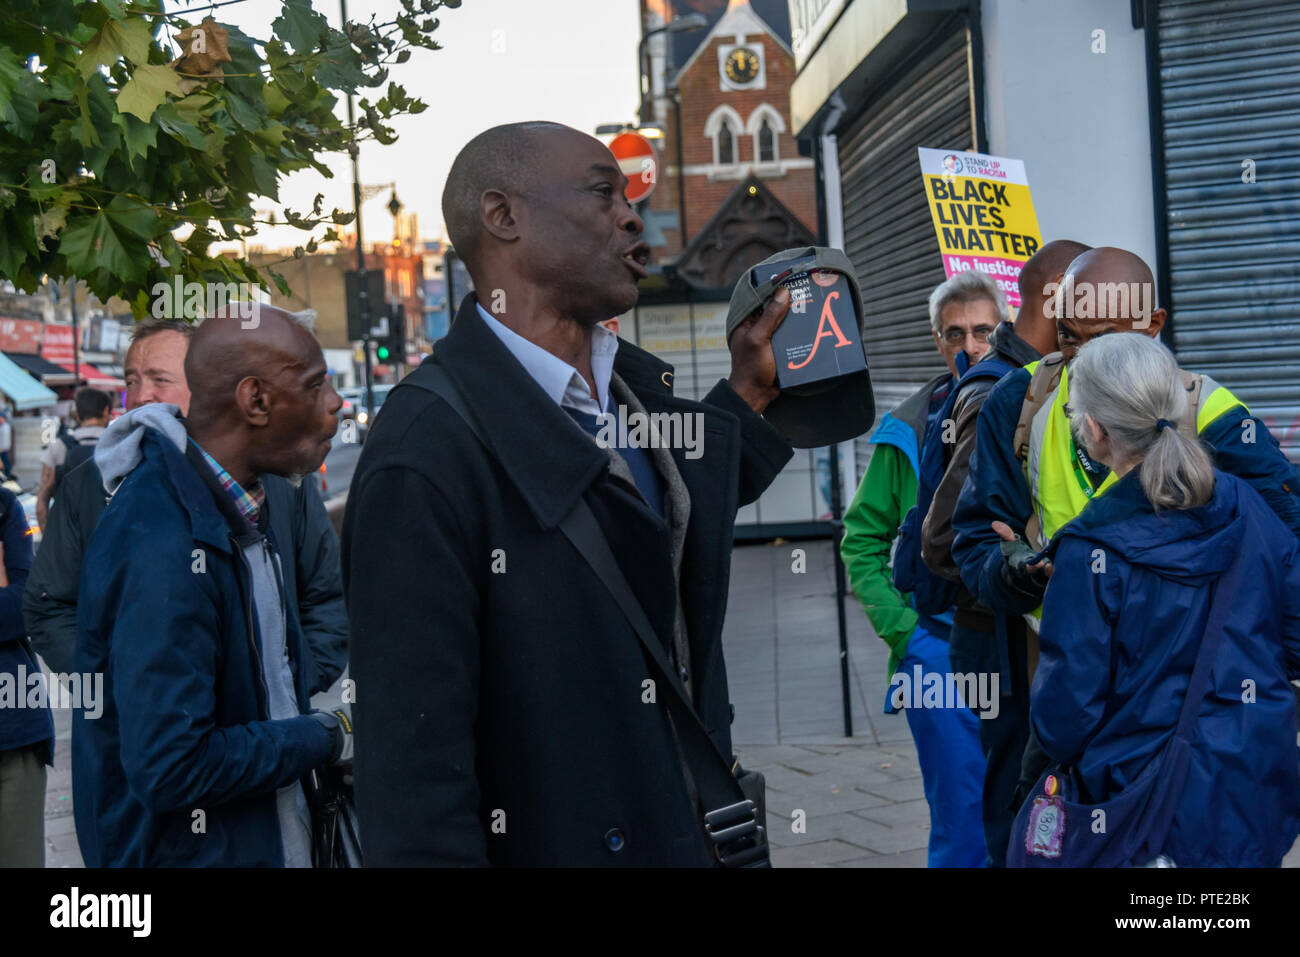 London, UK. October 9th 2018. A man complains about his treatment by police and the justice system as people gather for a rally outside the New Atlas Cafe Restaurant where a young black man was attacked by police who used obviously unnecessary force when arresting him on suspicion of having been involved in a knife attack. He was assaulted by six officers, and was viciously kicked while officers struggled to handcuff him, andwhen he was well under control and held on the ground he was sprayed in the face with CS gas. Credit: Peter Marshall/Alamy Live News - Stock Image